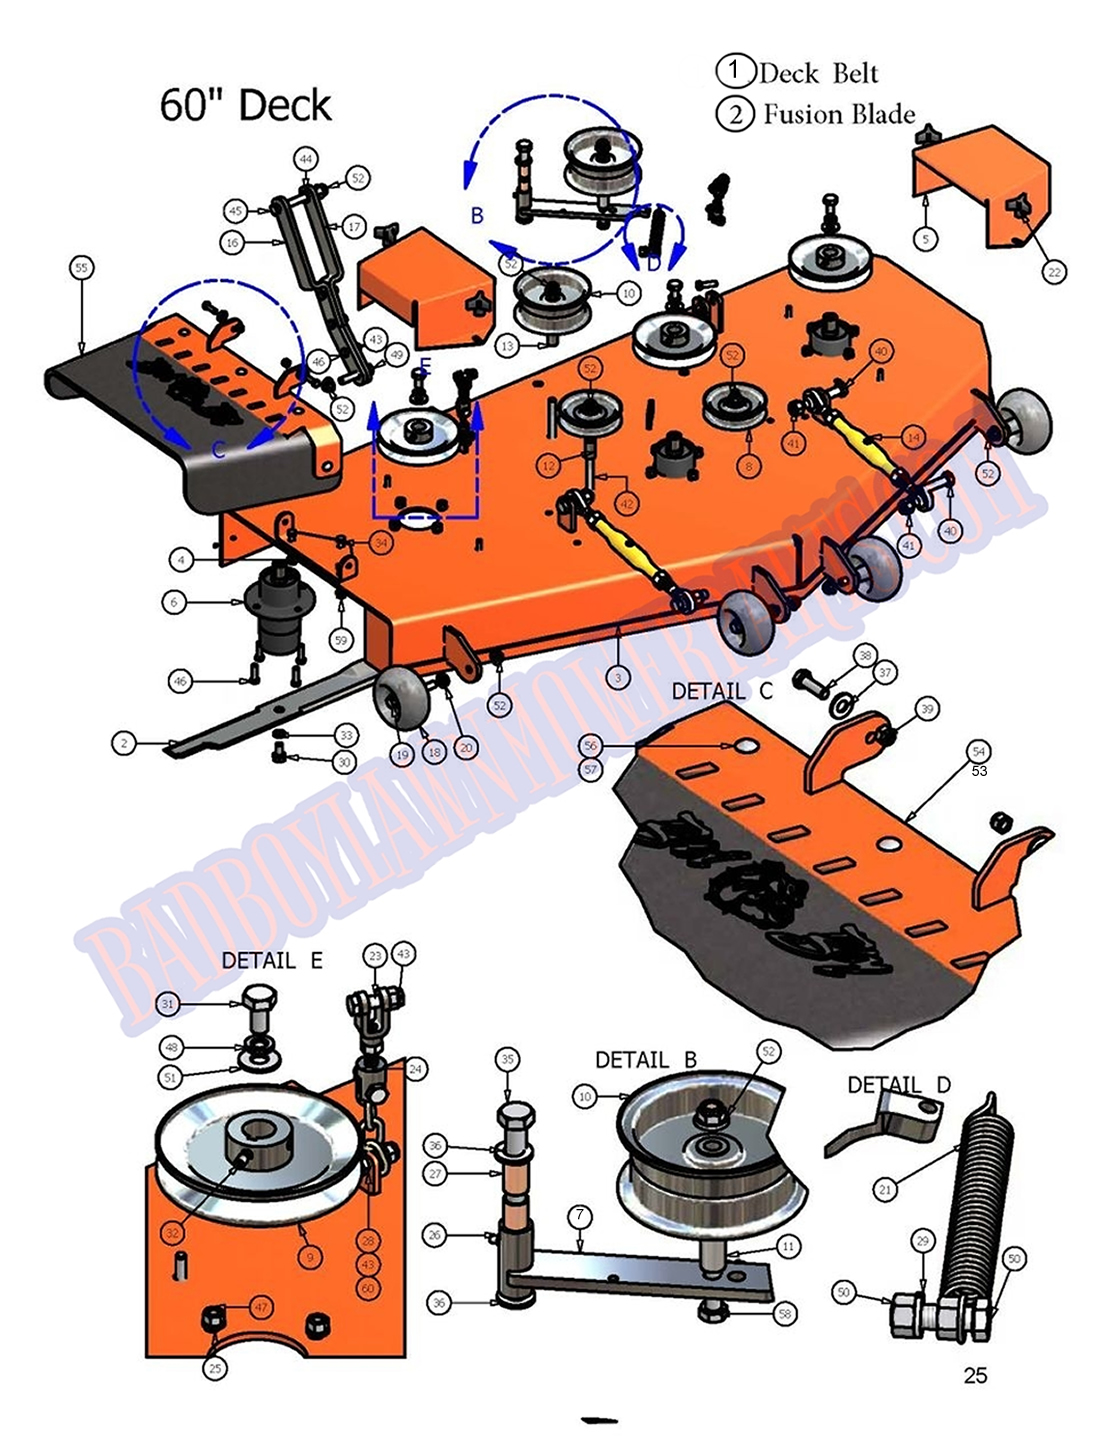 2007 Diesel 60 Deck Assembly Manual Guide